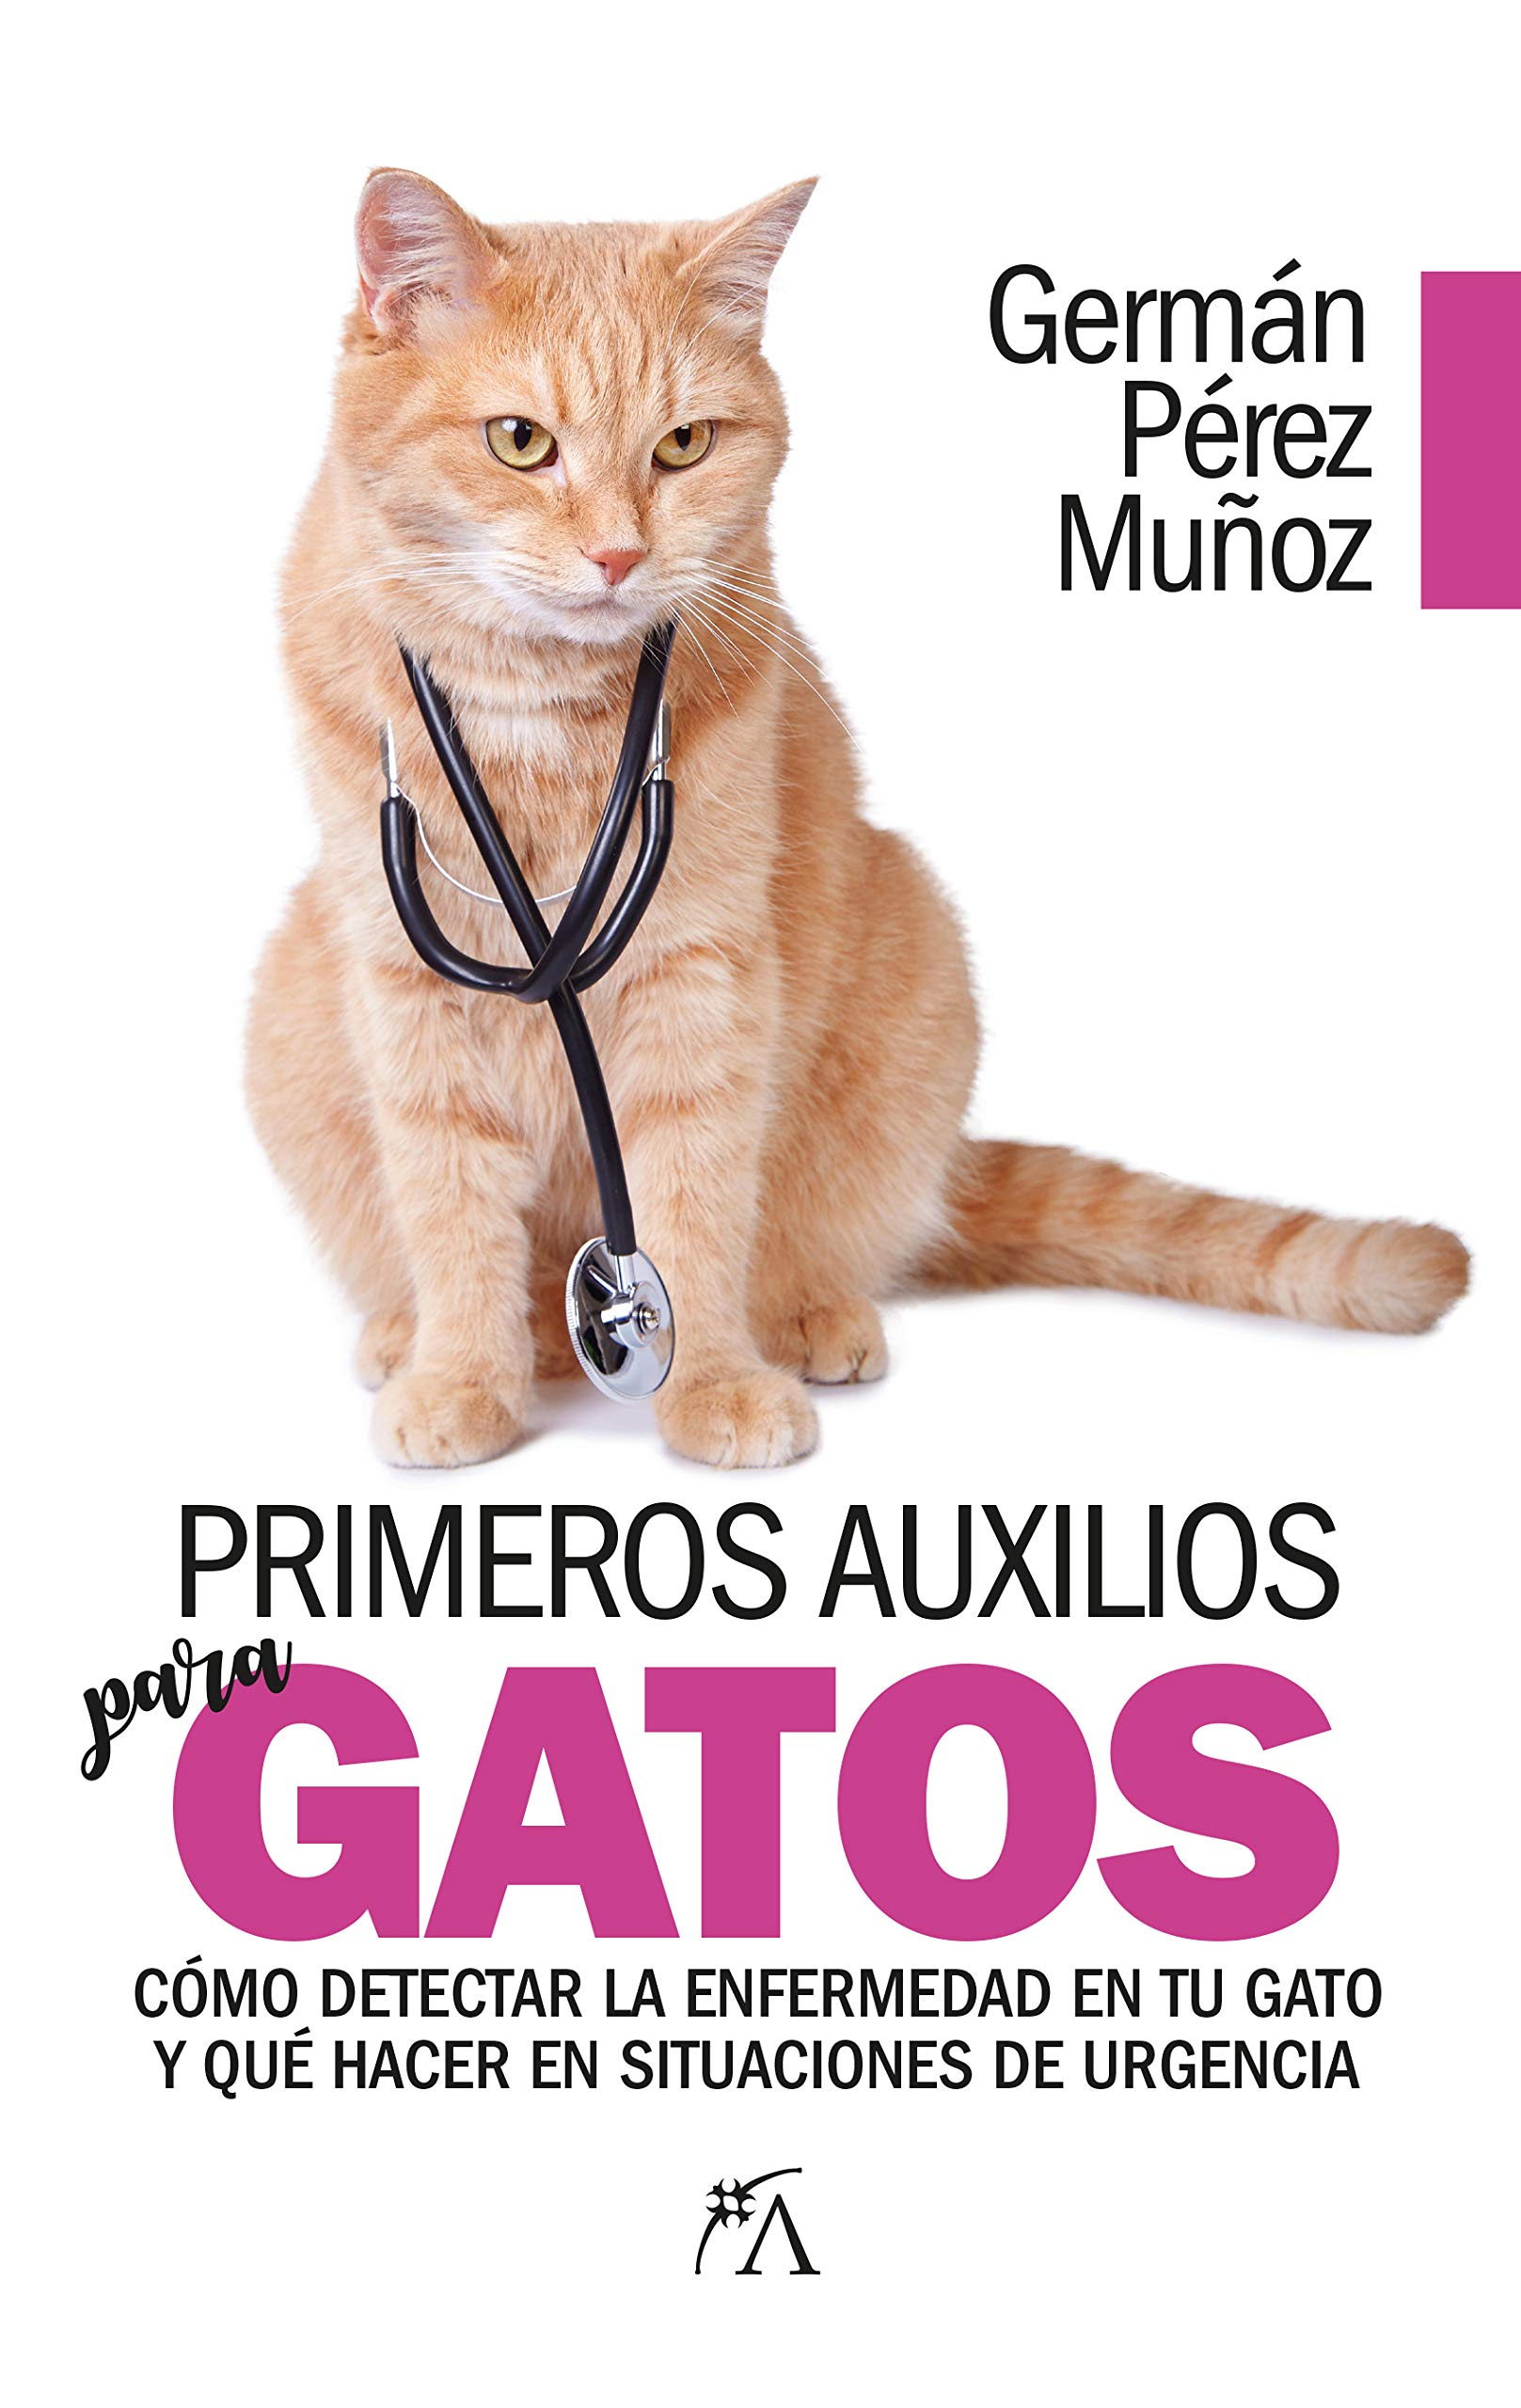 Primeros auxilios para gatos (Spanish Edition): German Perez Munoz: 9788417057633: Amazon.com: Books